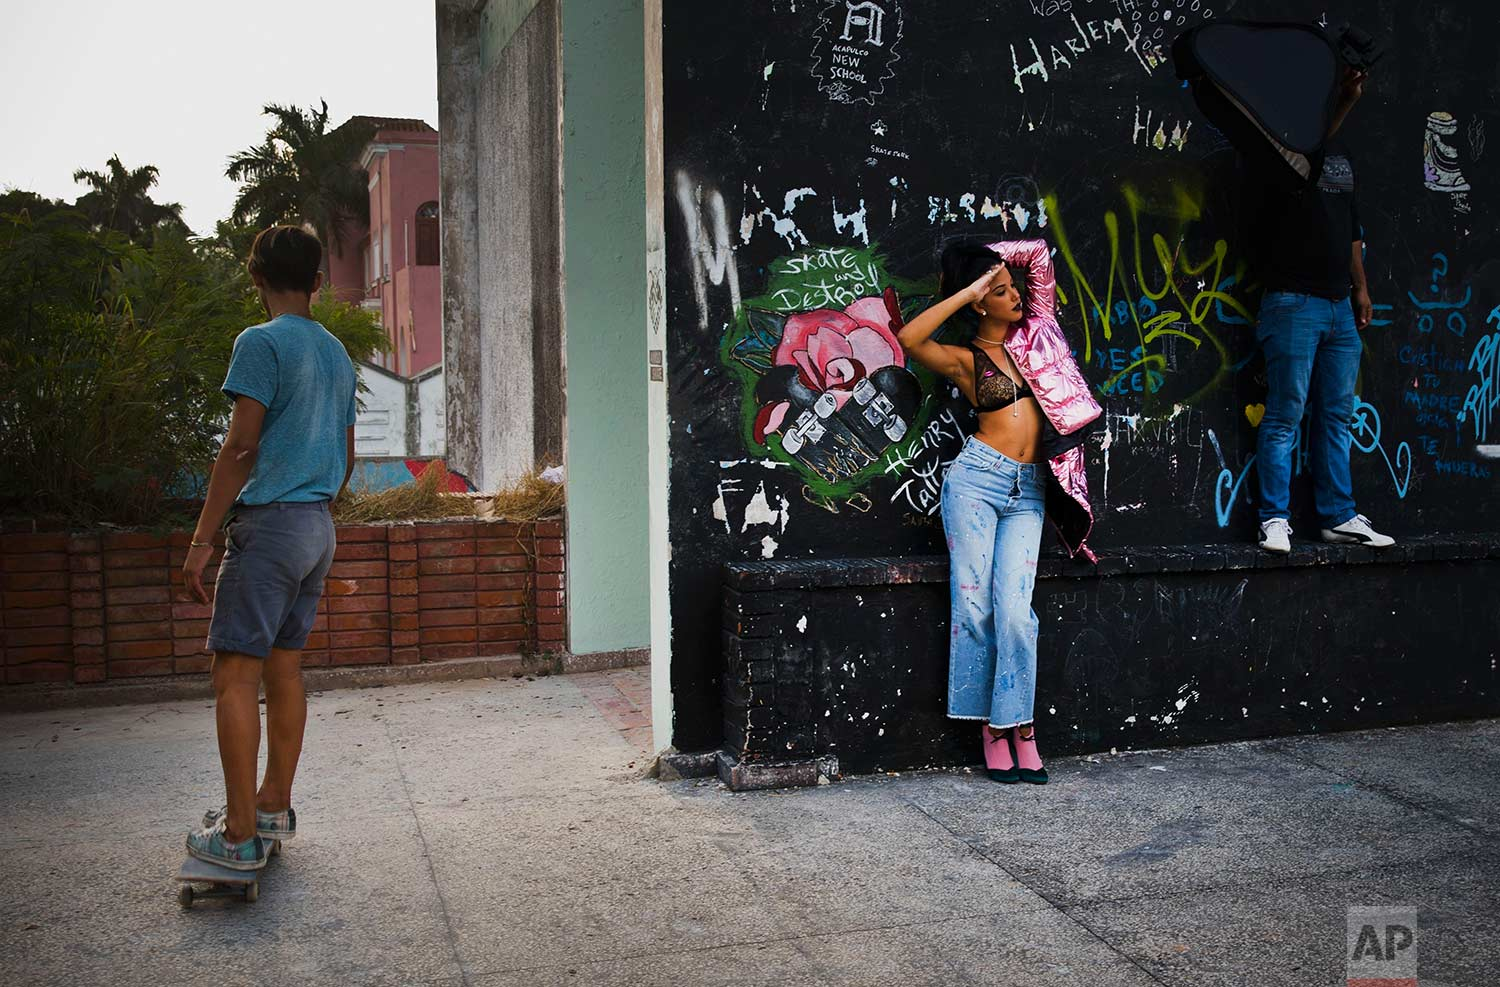 In this Jan. 11, 2018 photo, a young model and a member of the lighting crew use as their backdrop an abandoned gym that was converted into space for skateboarders, the day of the space's inauguration inside the Educational complex Ciudad Libertad, a former military barracks that the late Fidel Castro turned into a school complex after the revolution in Havana, Cuba. (AP Photo/Ramon Espinosa)